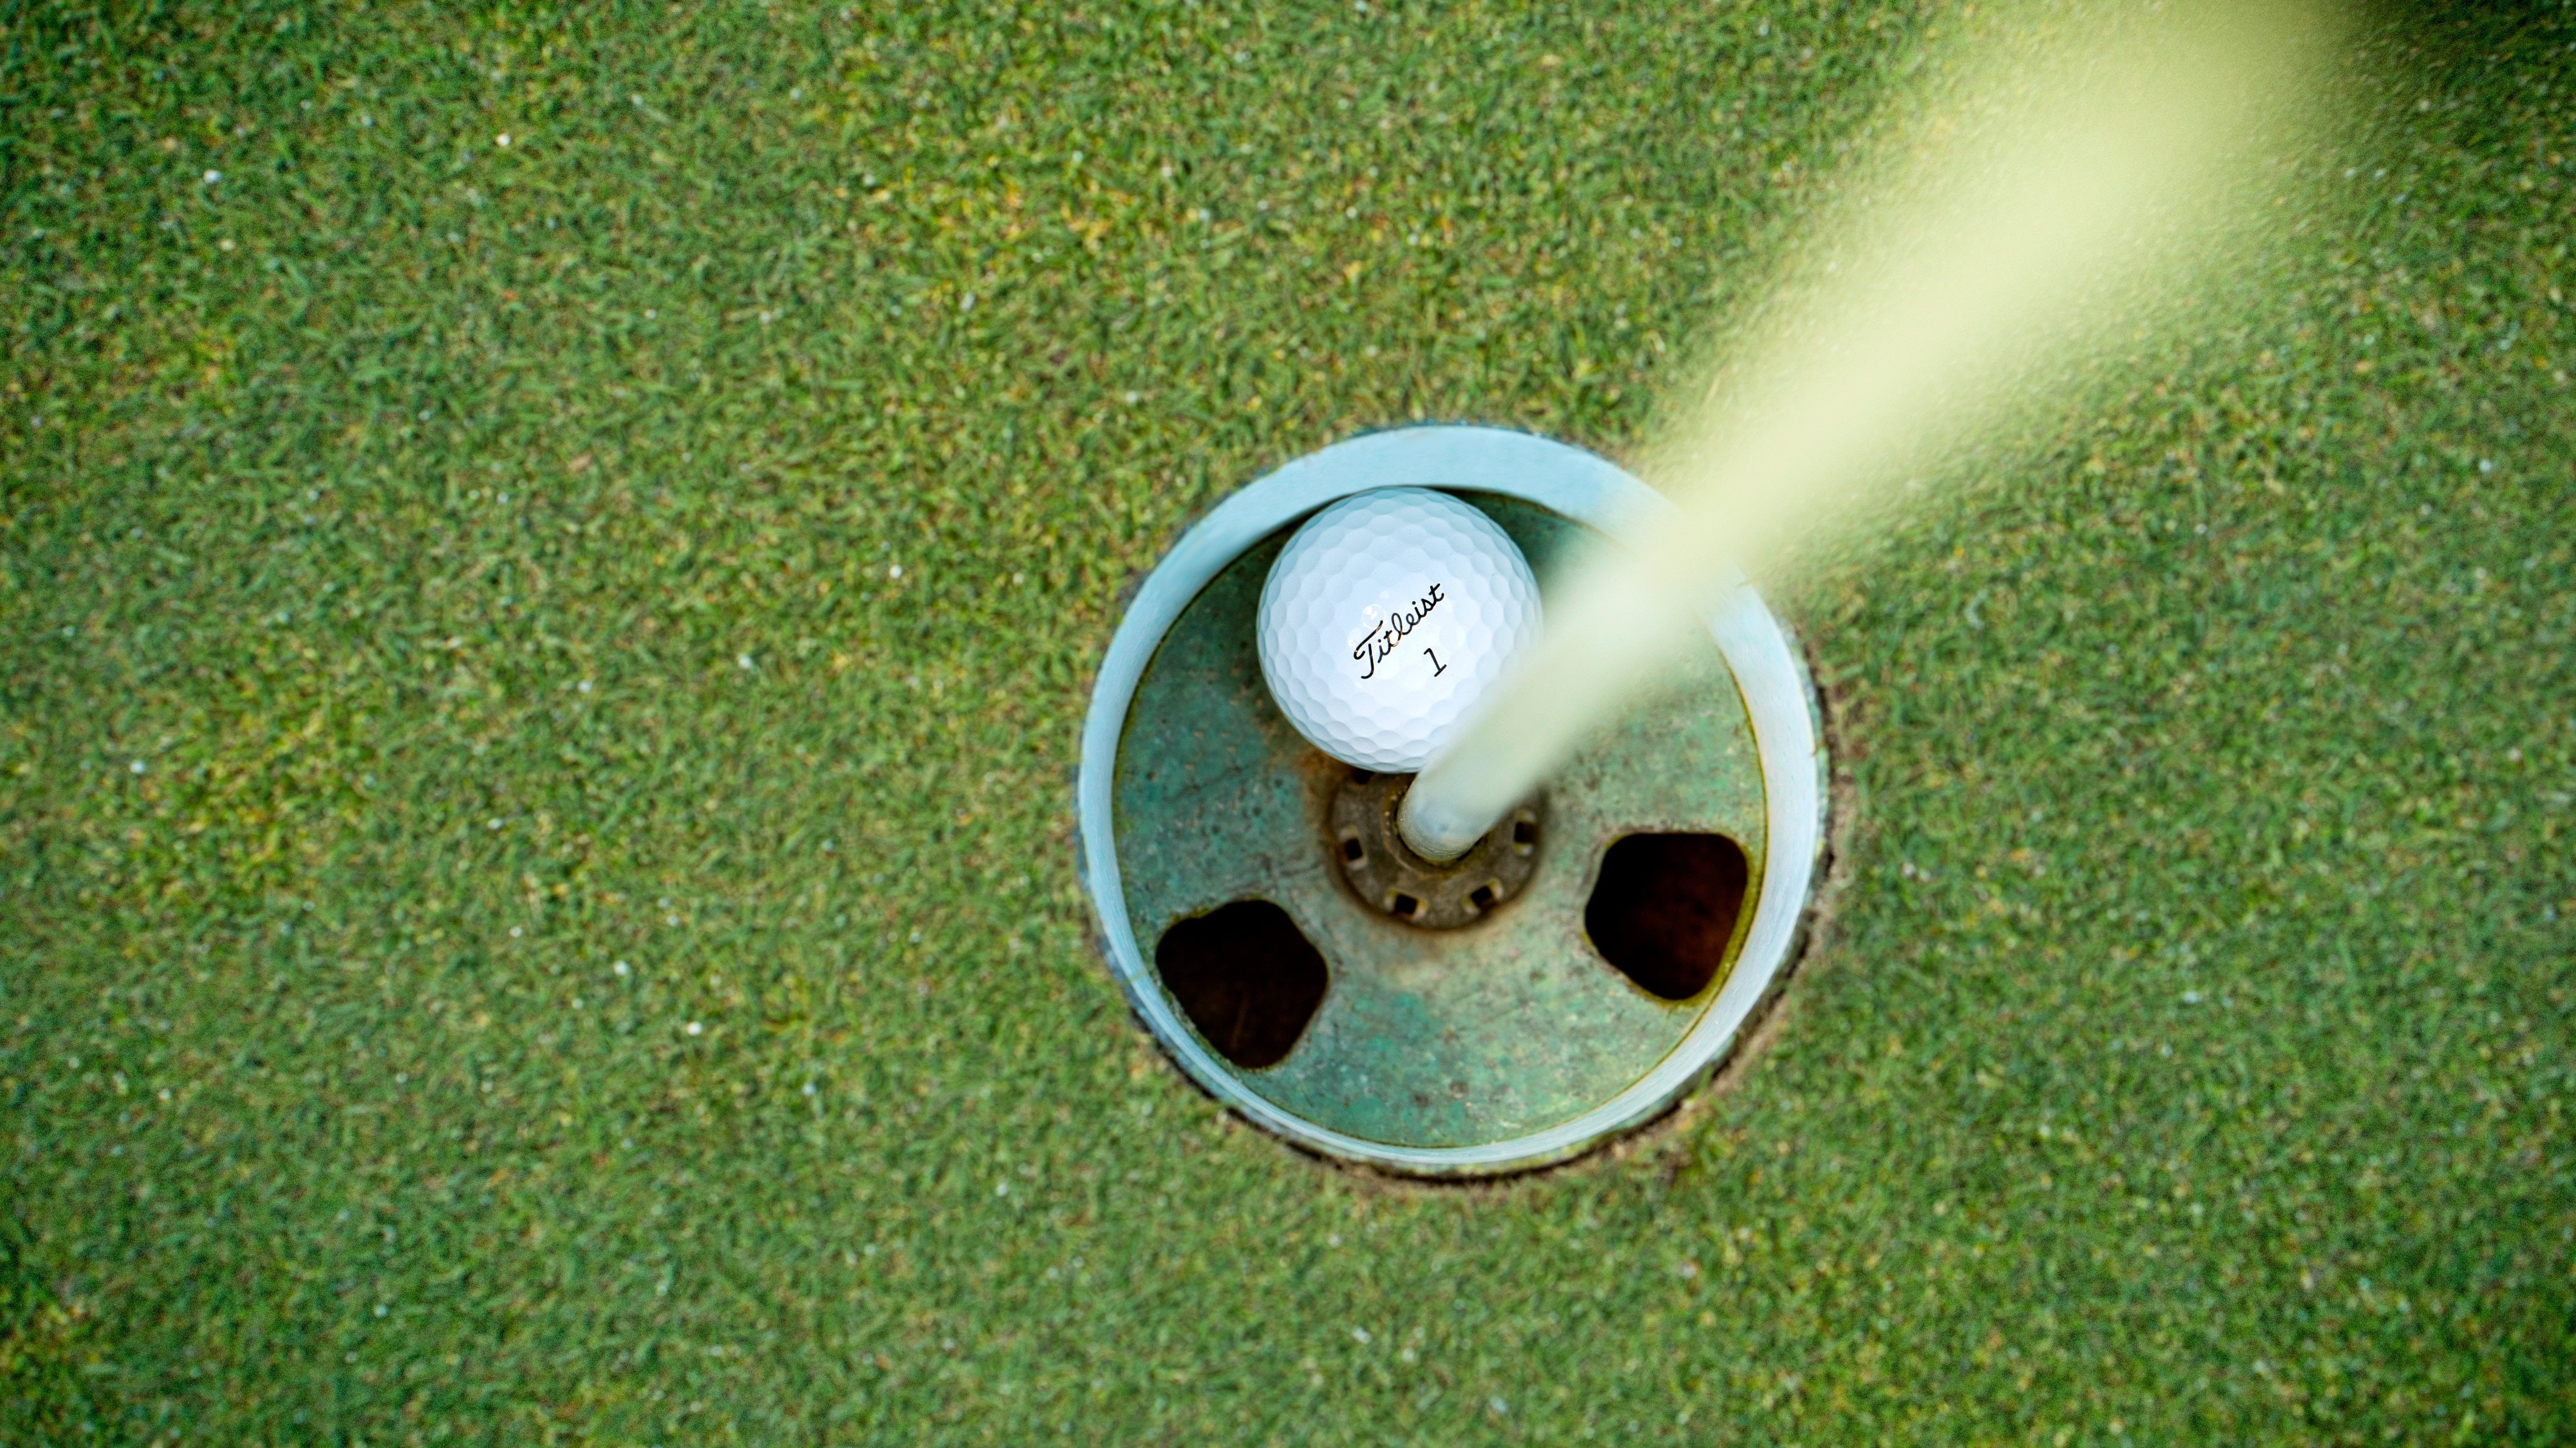 Hole in one at Elk Run golf course